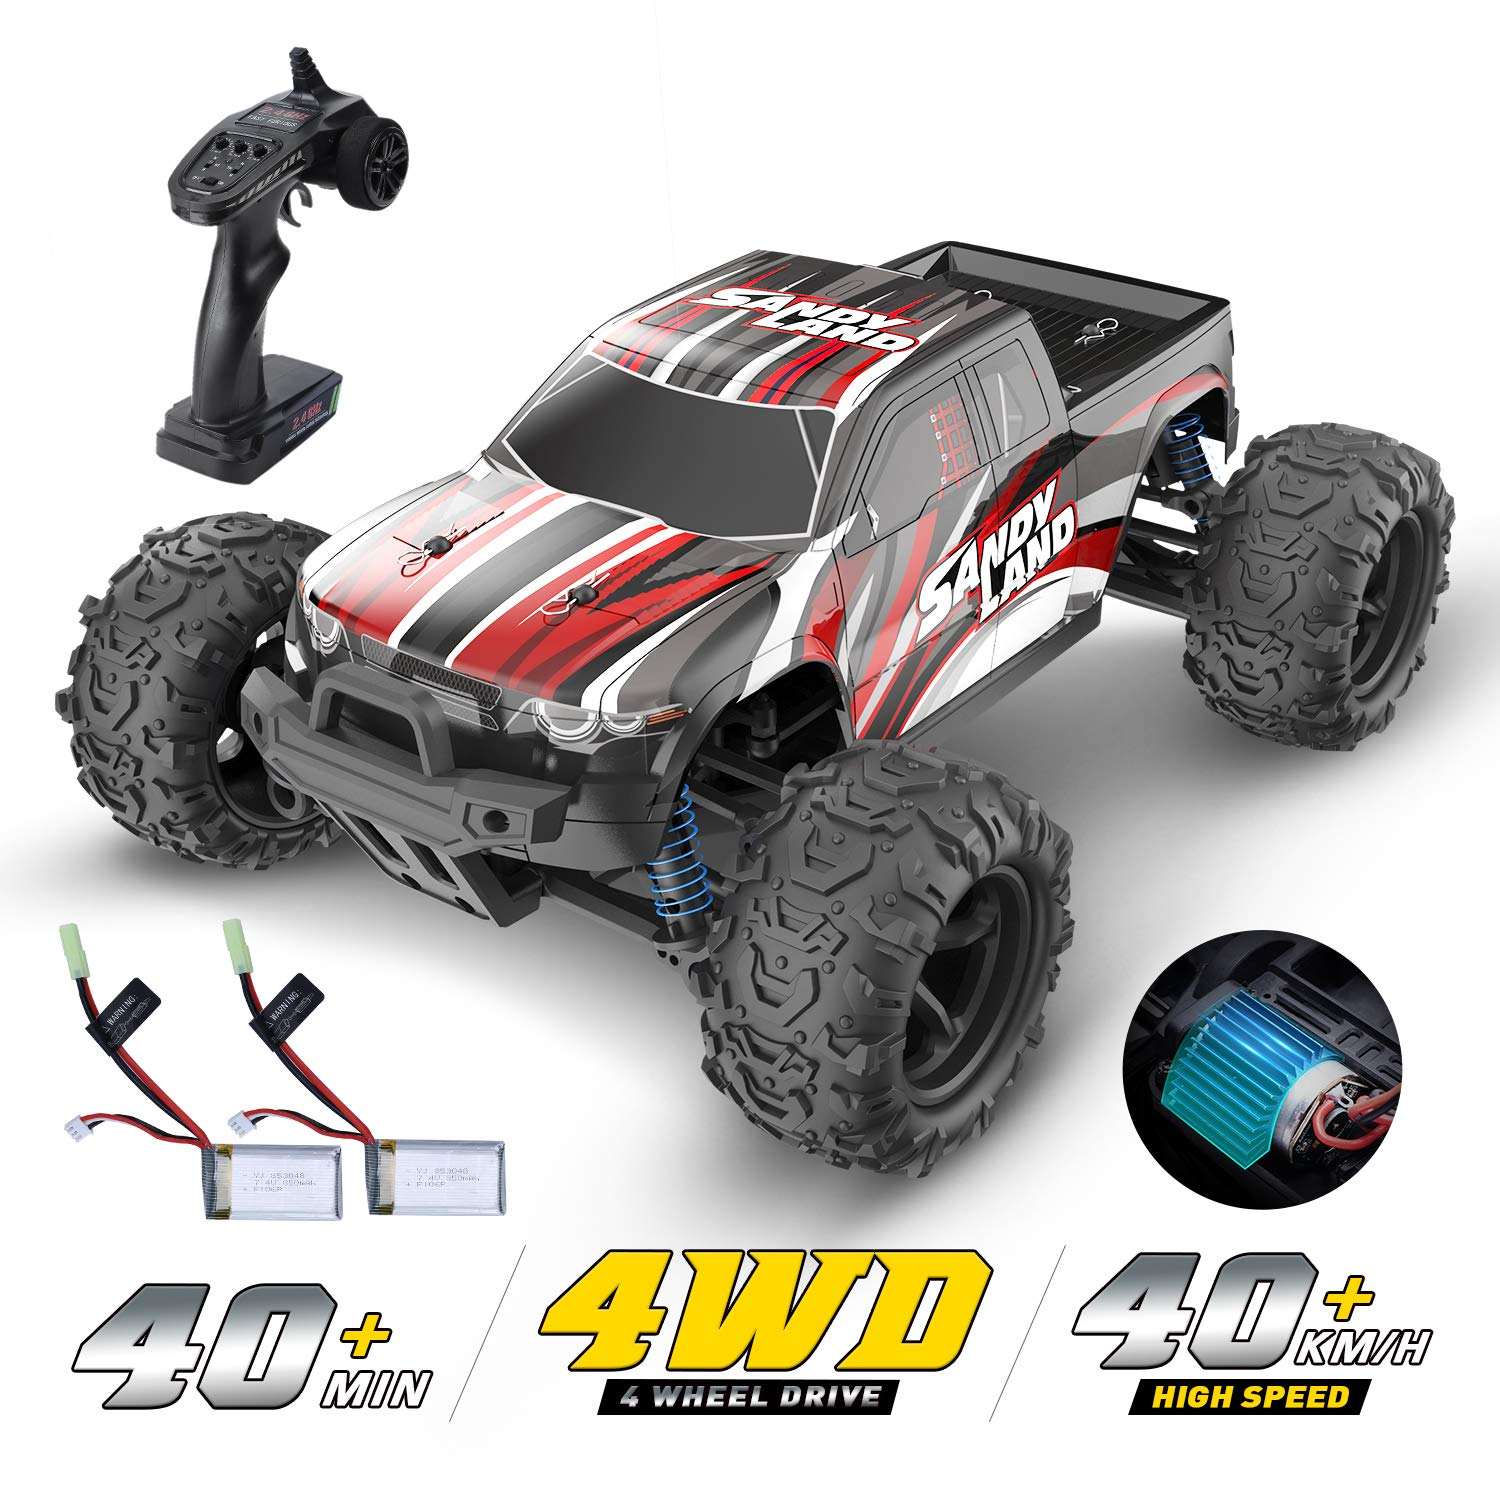 DEERC Speed Remote Control Adults